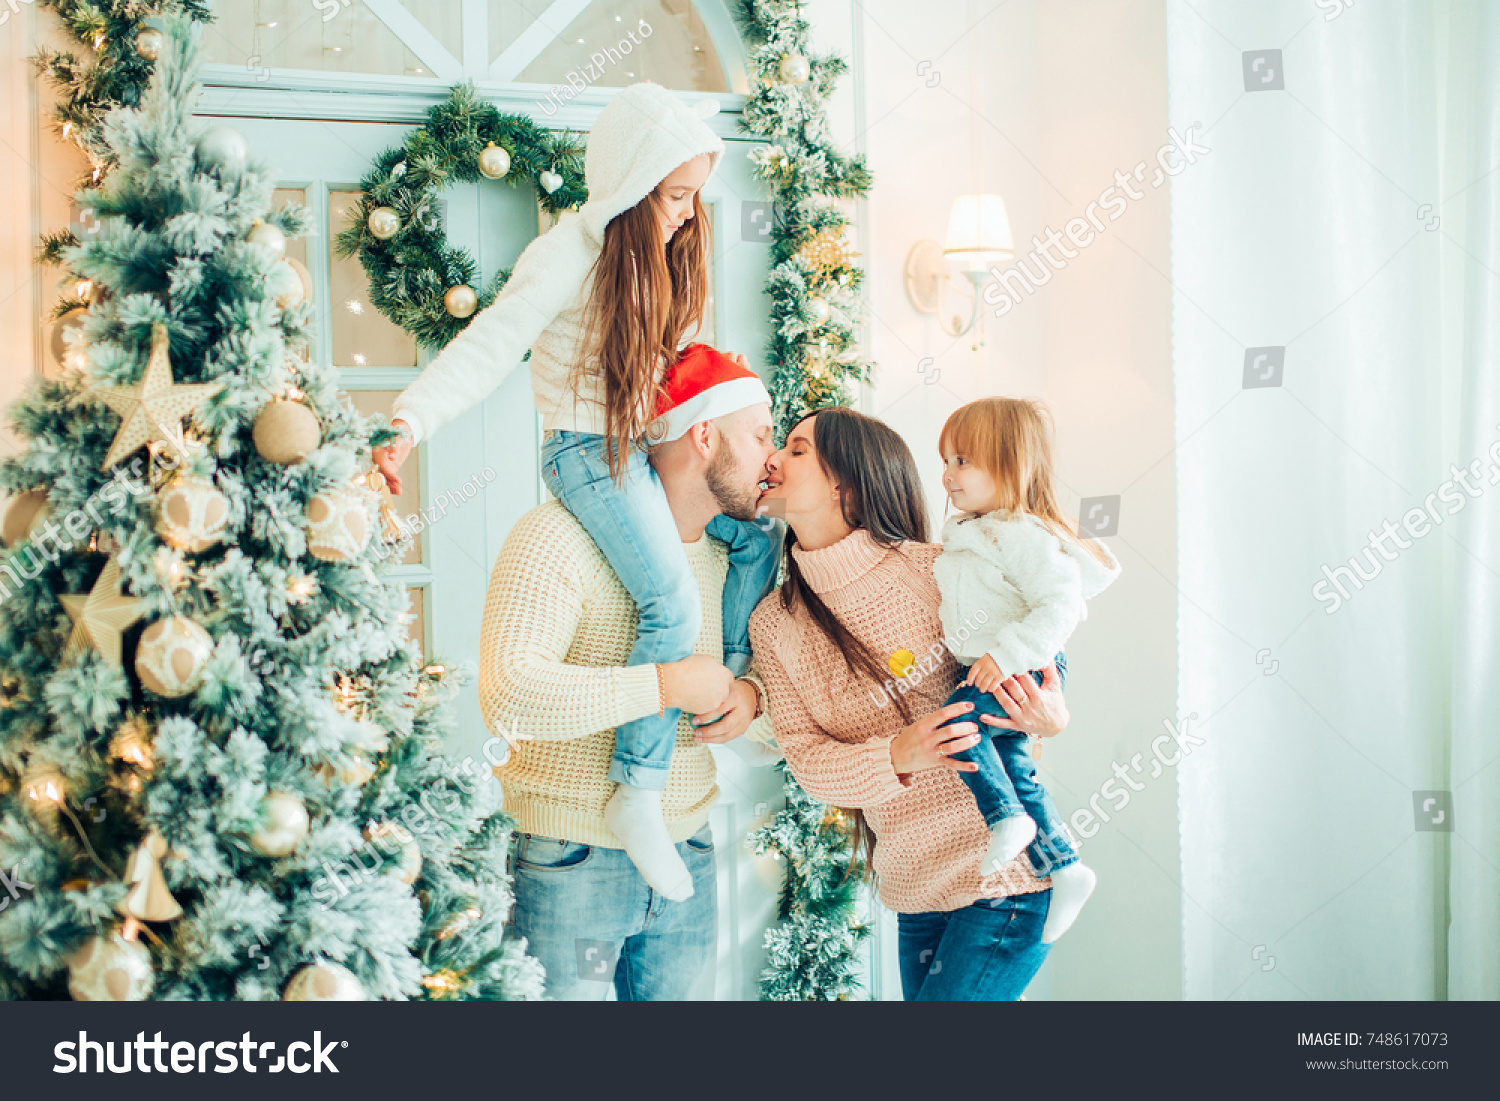 Fun Happy Family Christmas Gifts Parents Stock Photo (Edit Now ...